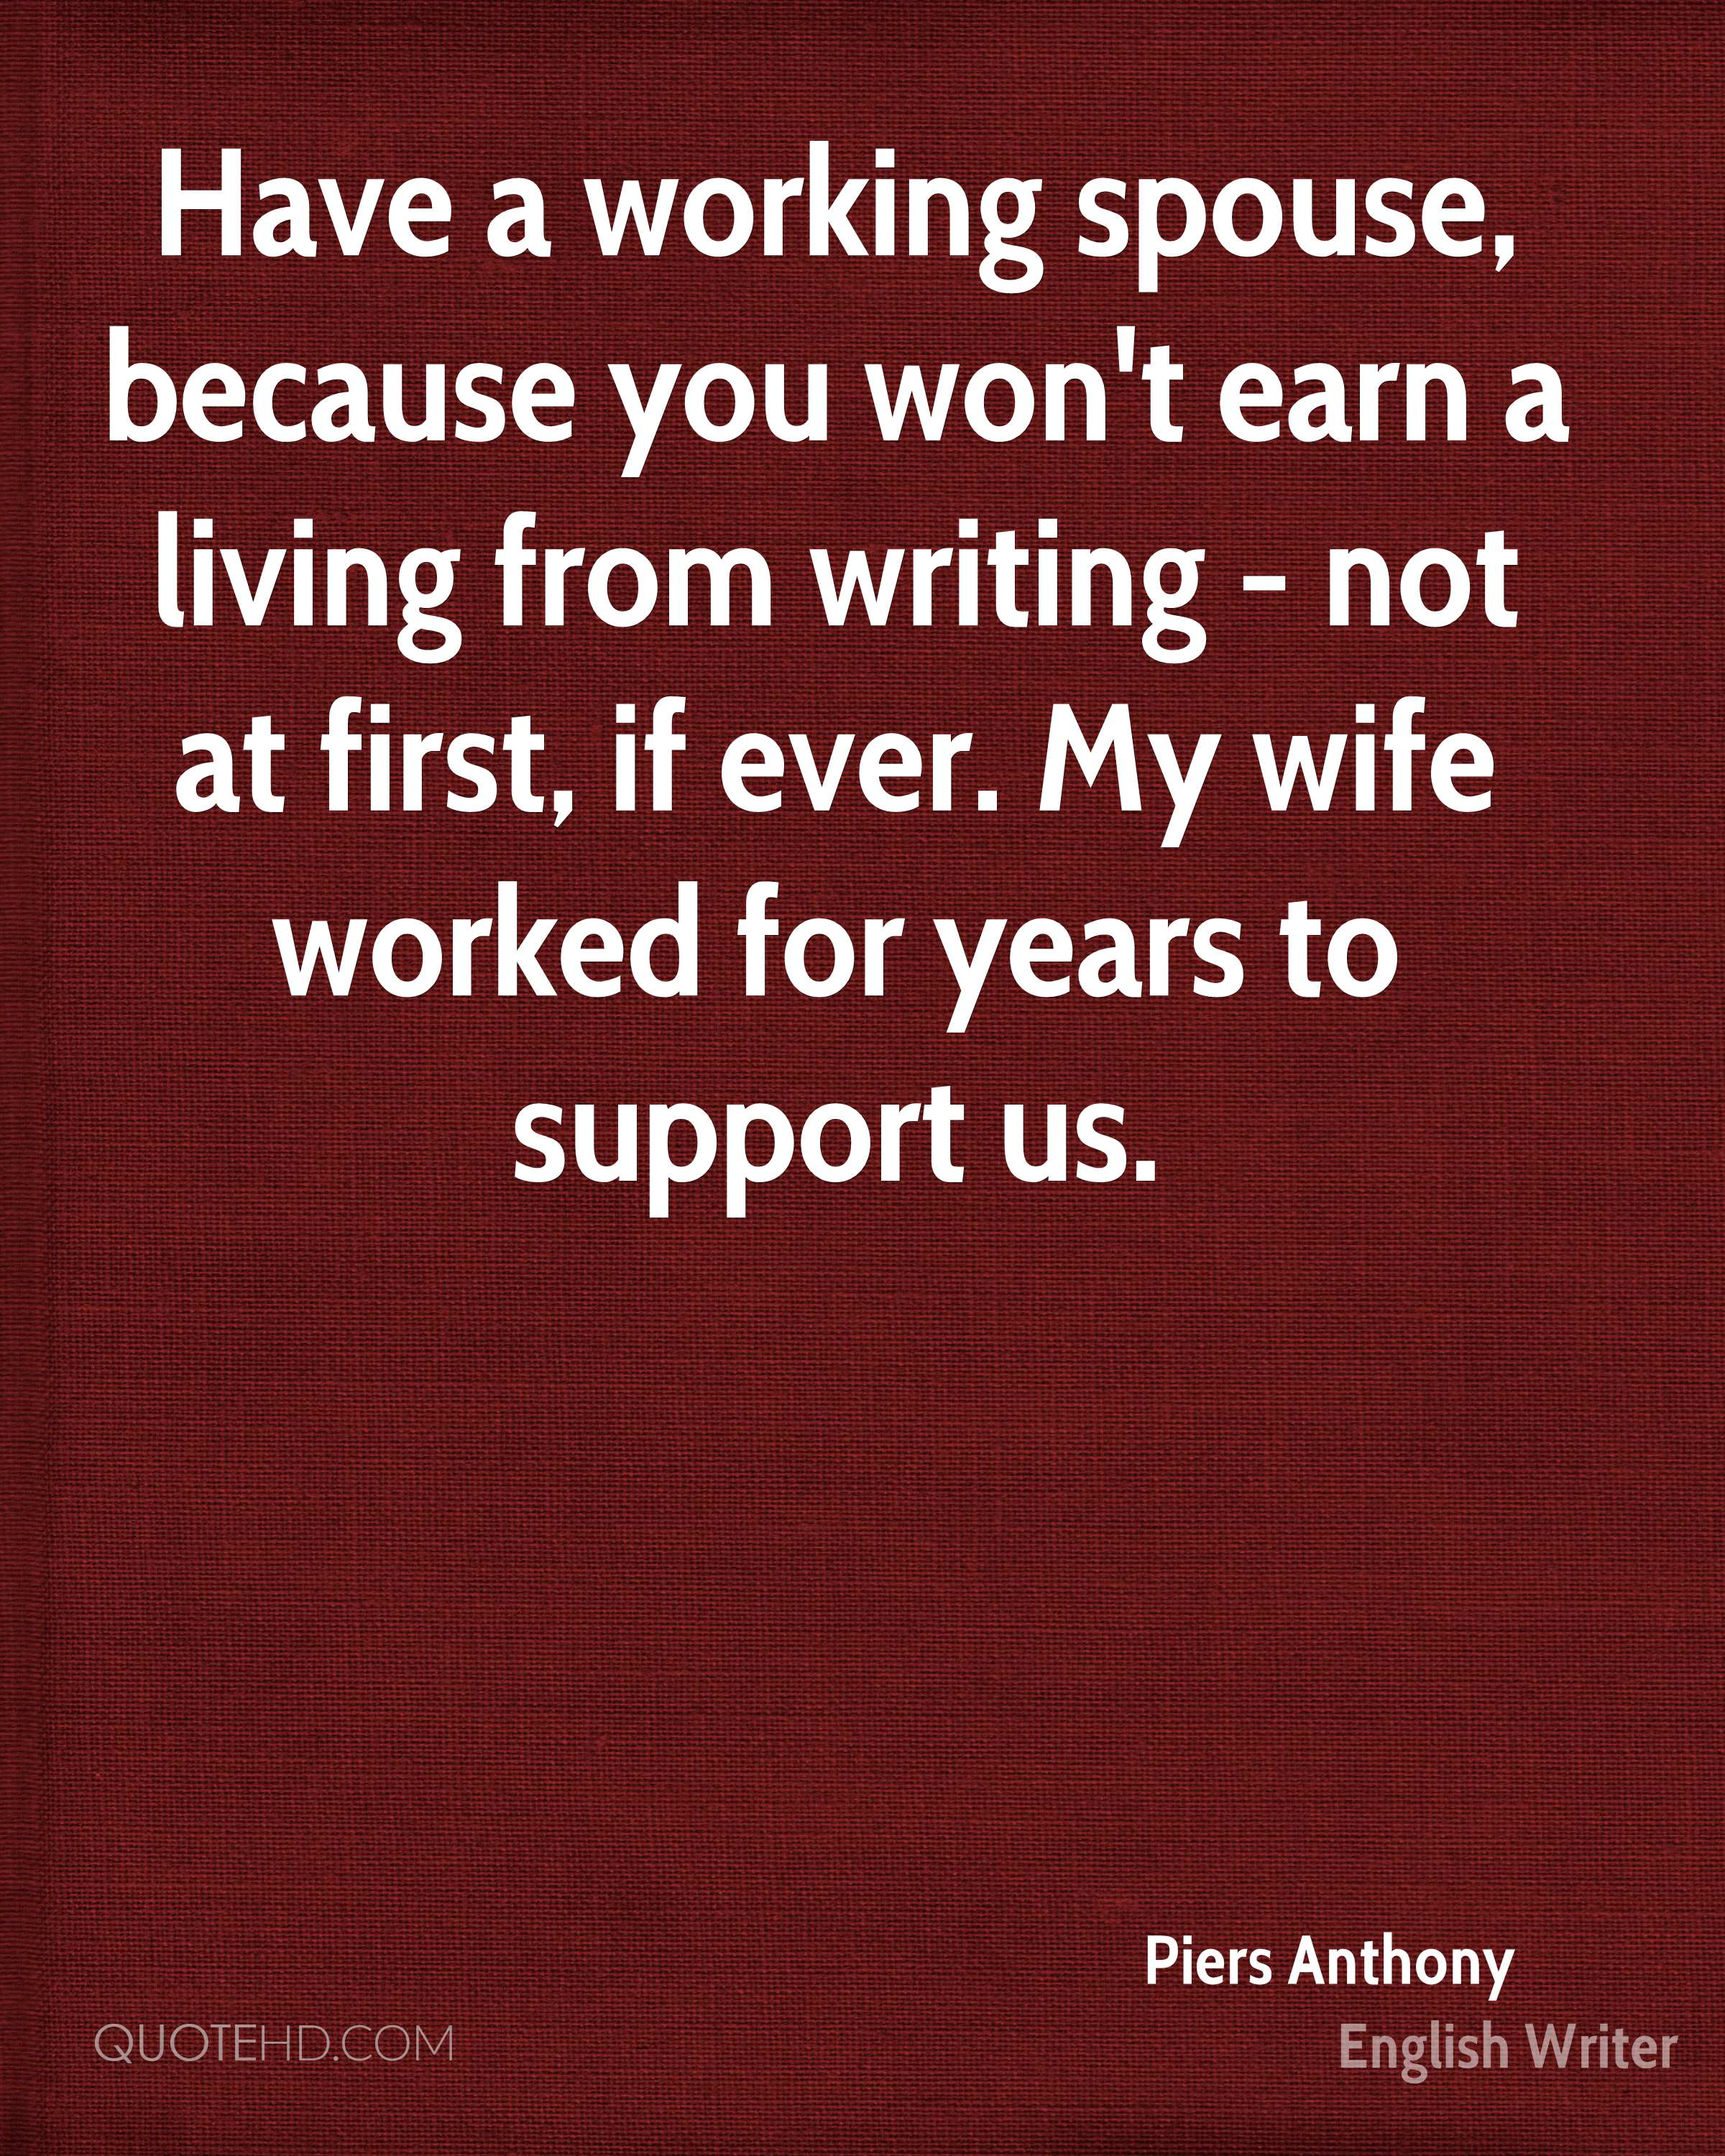 Have a working spouse, because you won't earn a living from writing - not at first, if ever. My wife worked for years to support us.